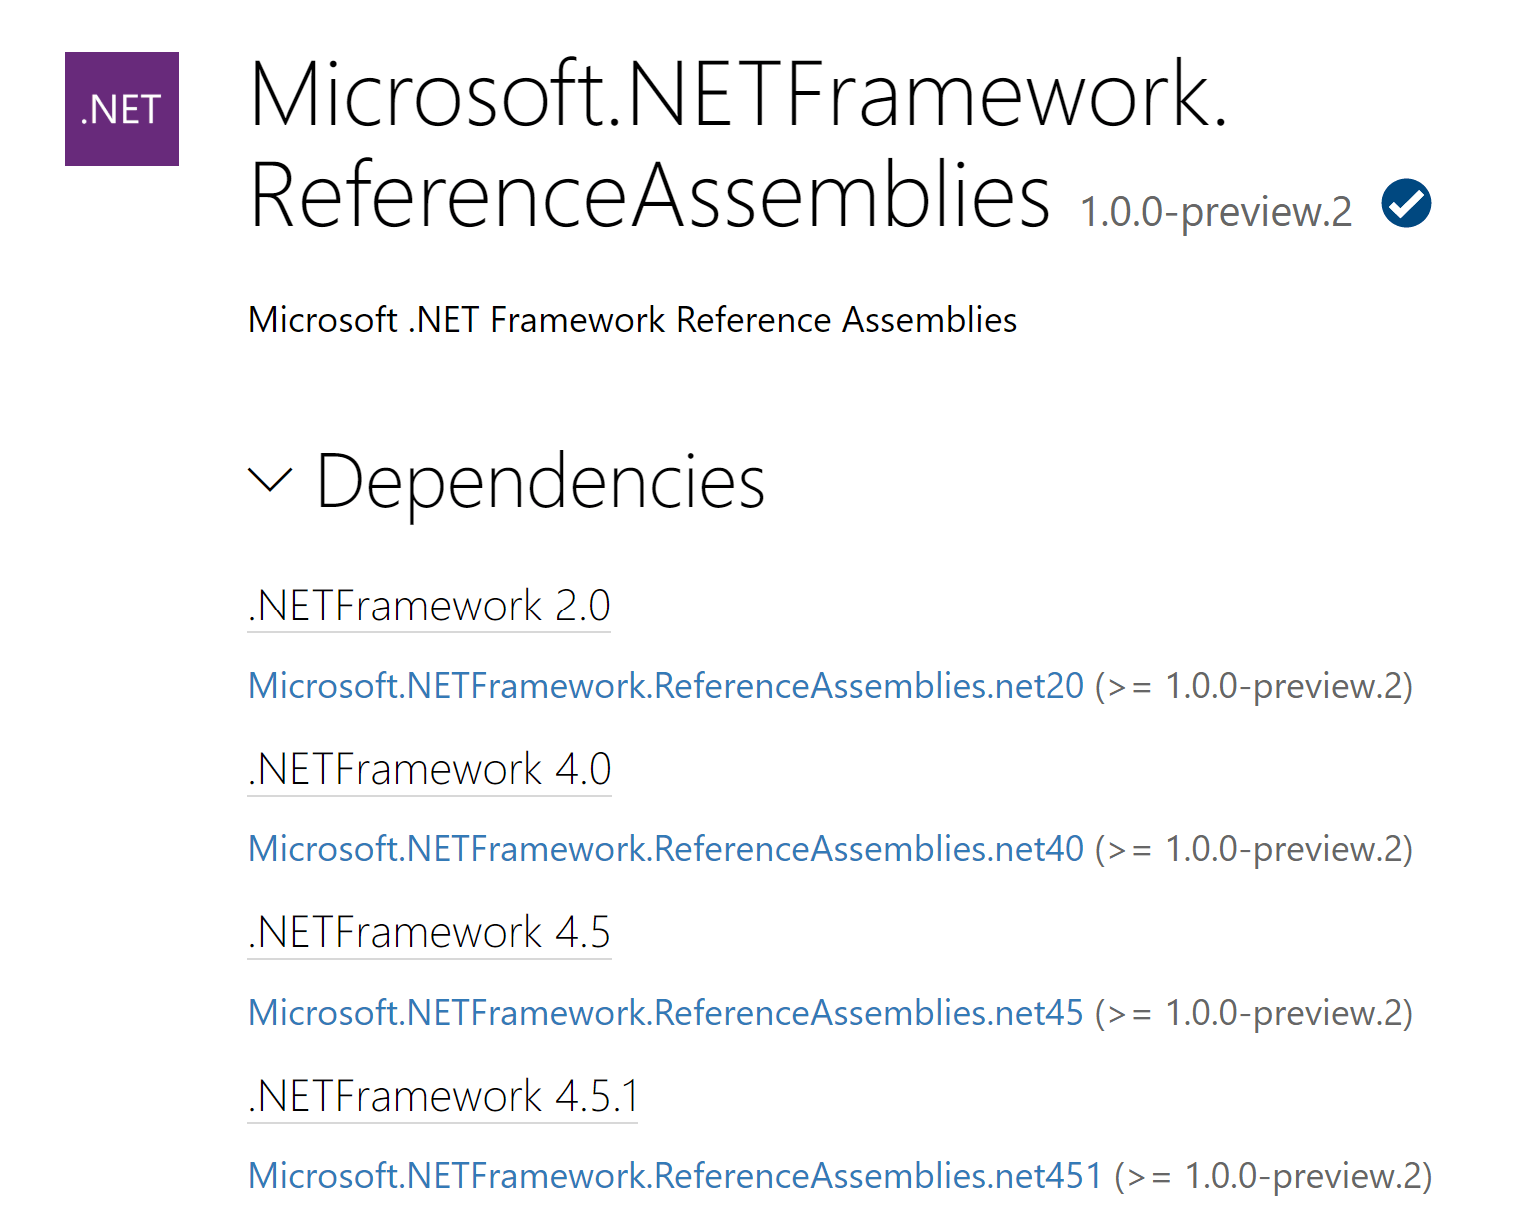 The Microsoft.NETFramework.ReferenceAssemblies nuget.org page showing its dependencies